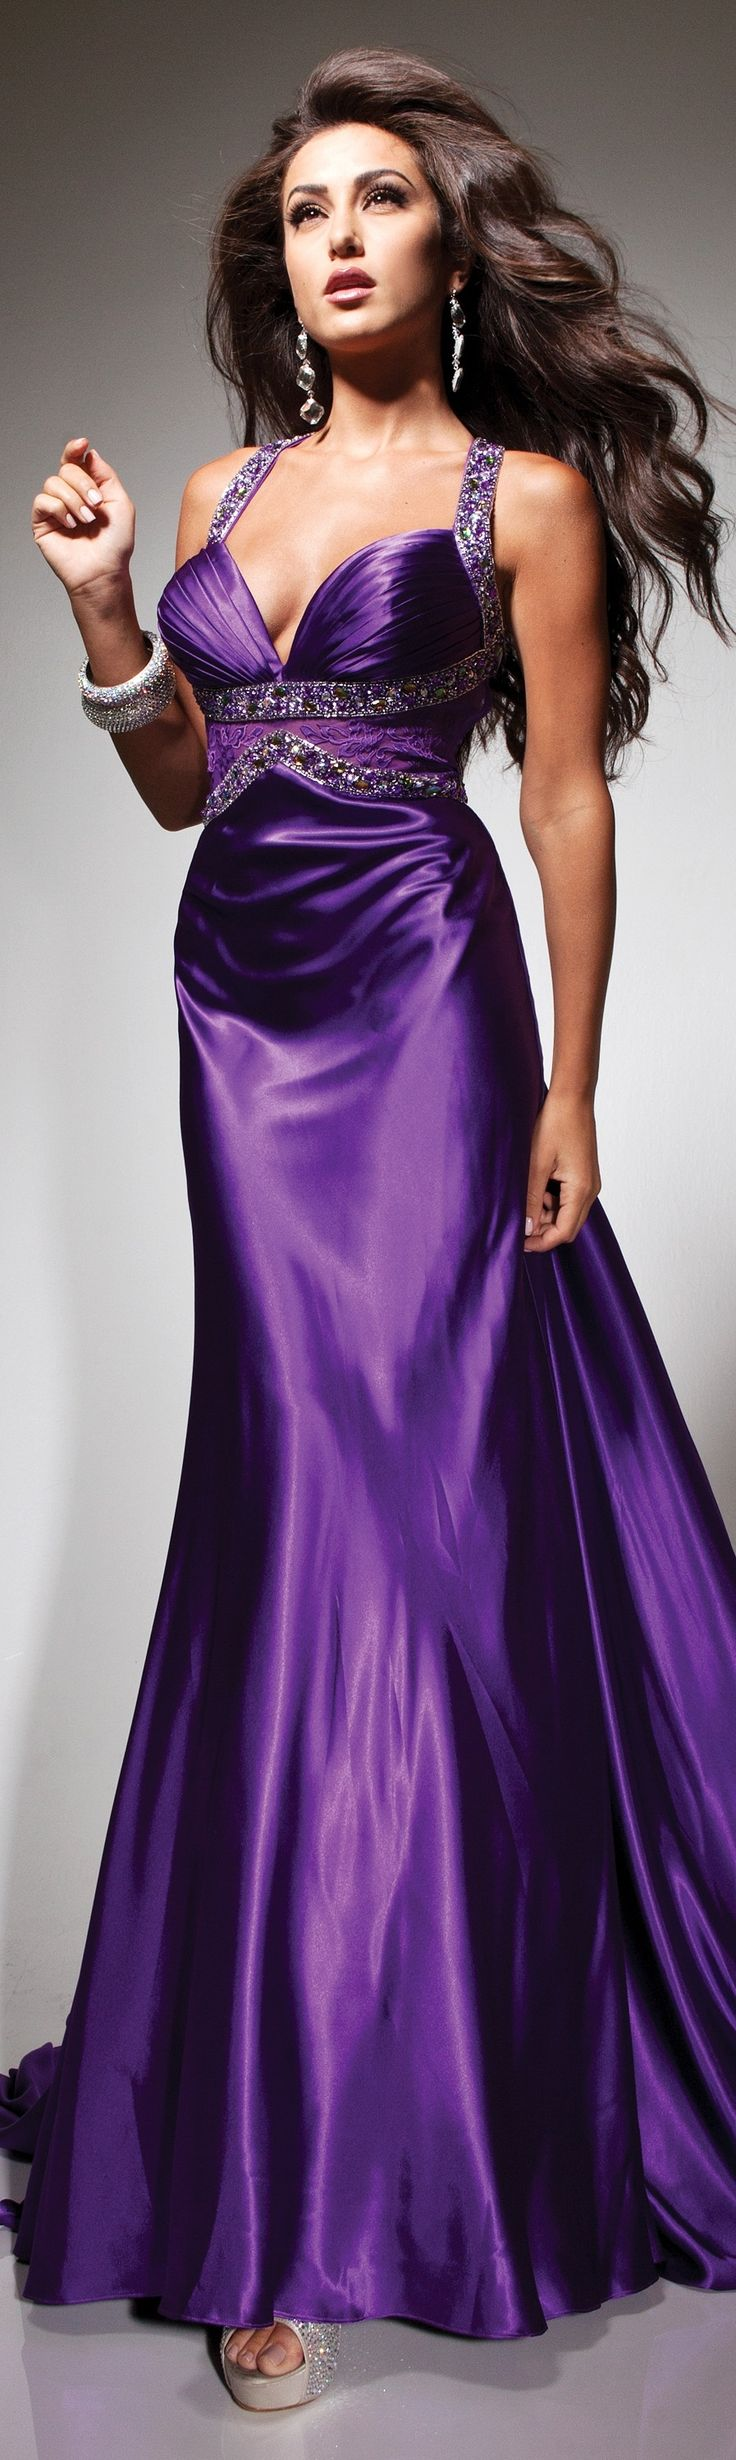 This Purple dress from Tony B couture 2013/2014 is the perfect amount of GORGEOUS!!!